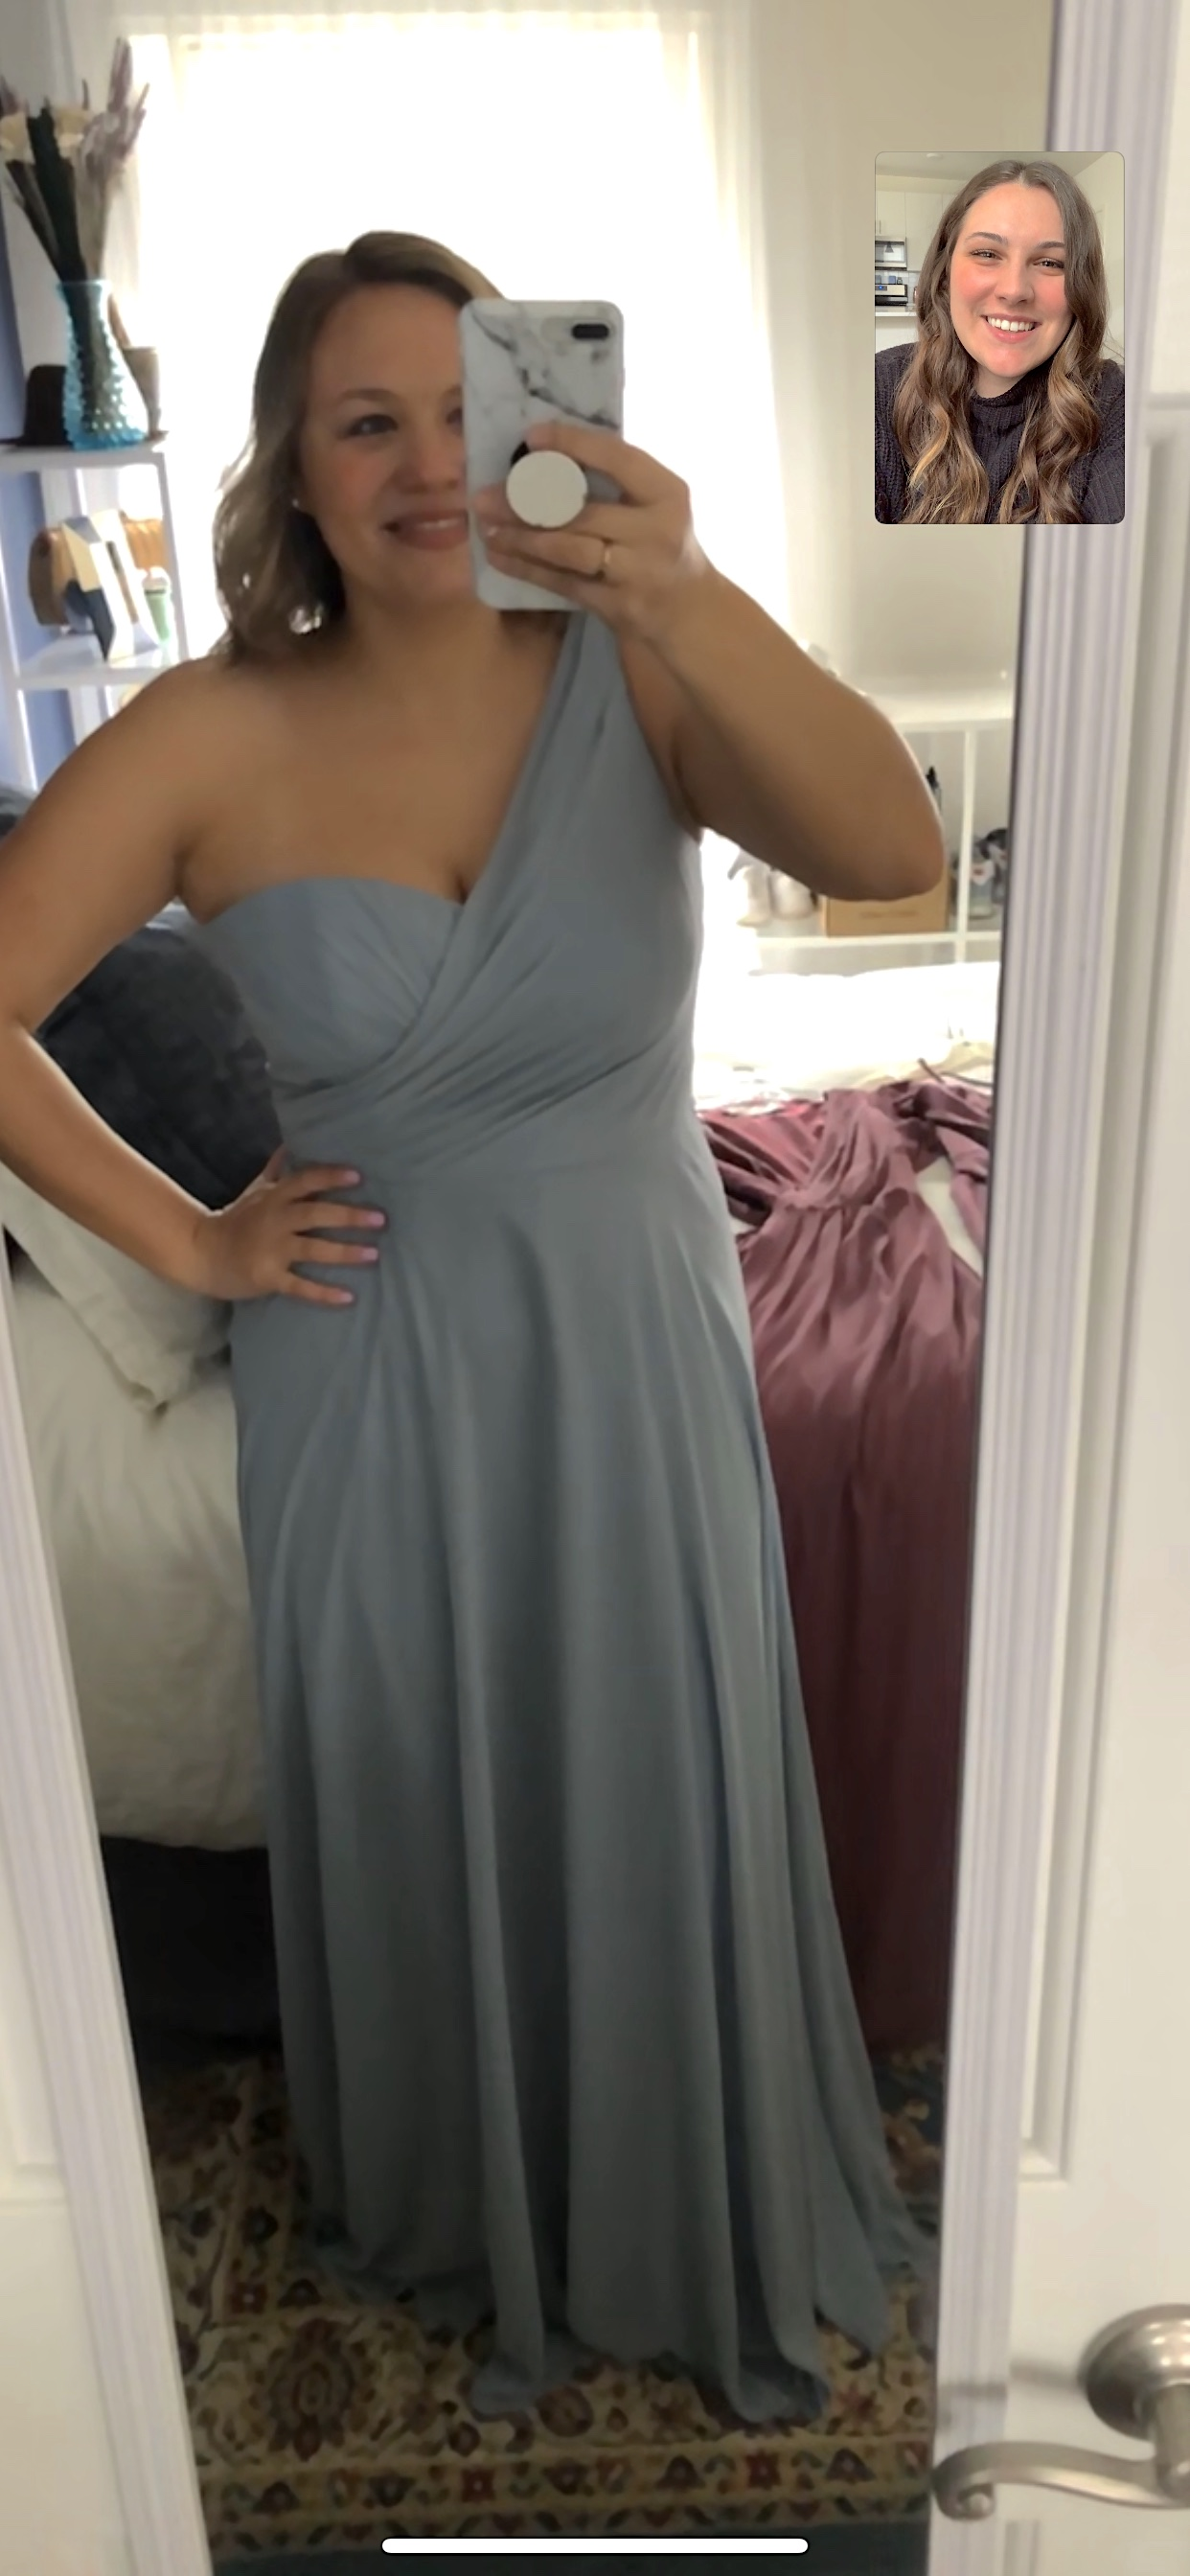 Girl in long dress on video chat